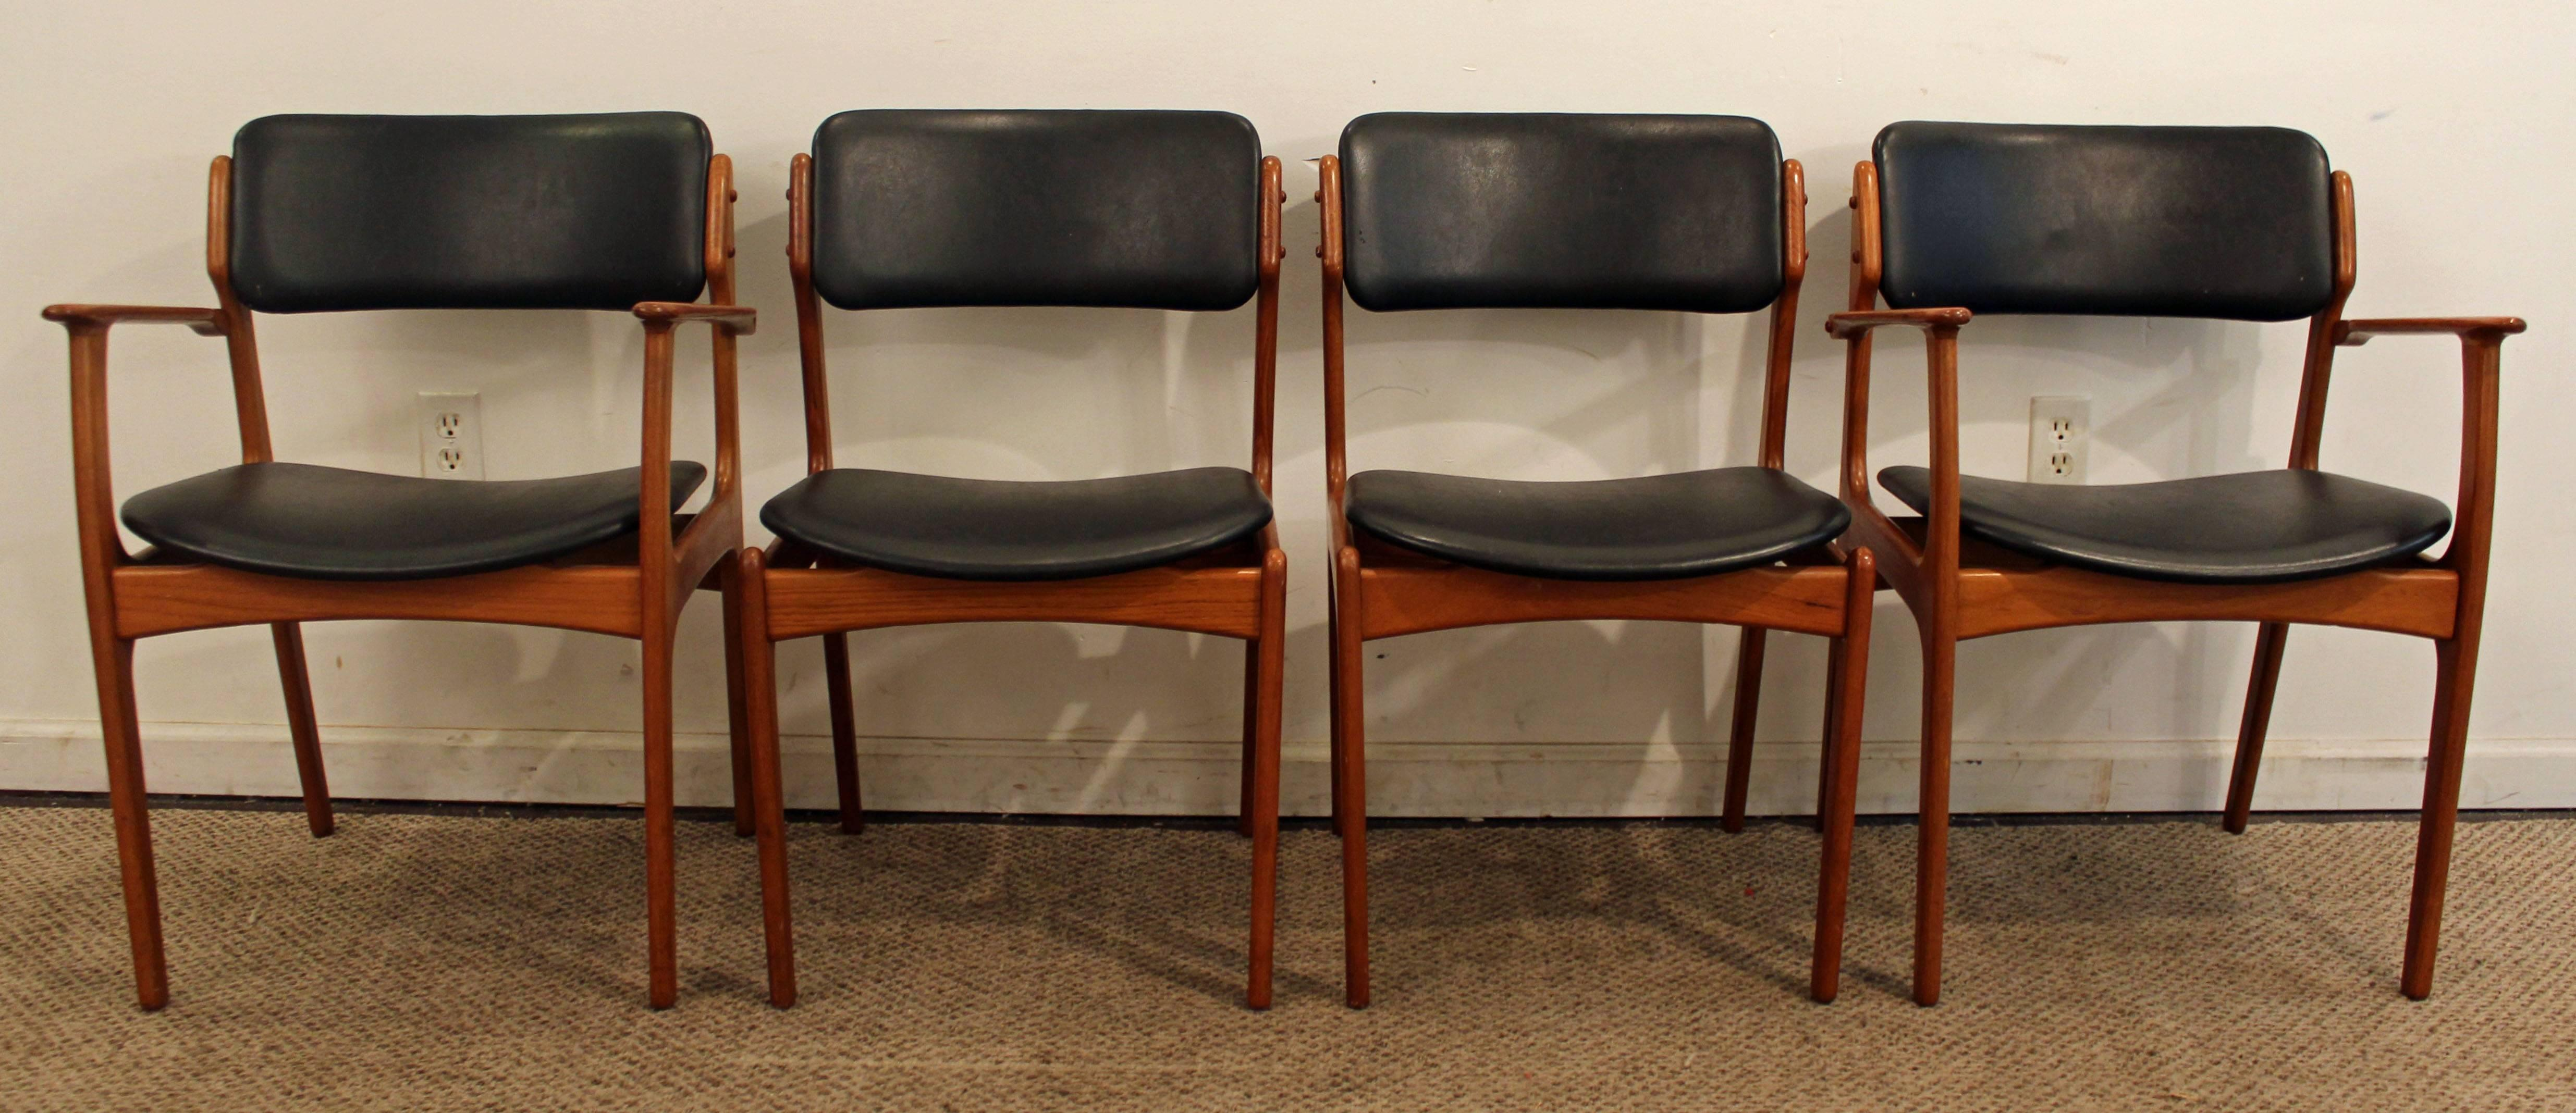 Set of Four Erik Buch for O D Mobler Teak Dining Chairs at 1stdibs